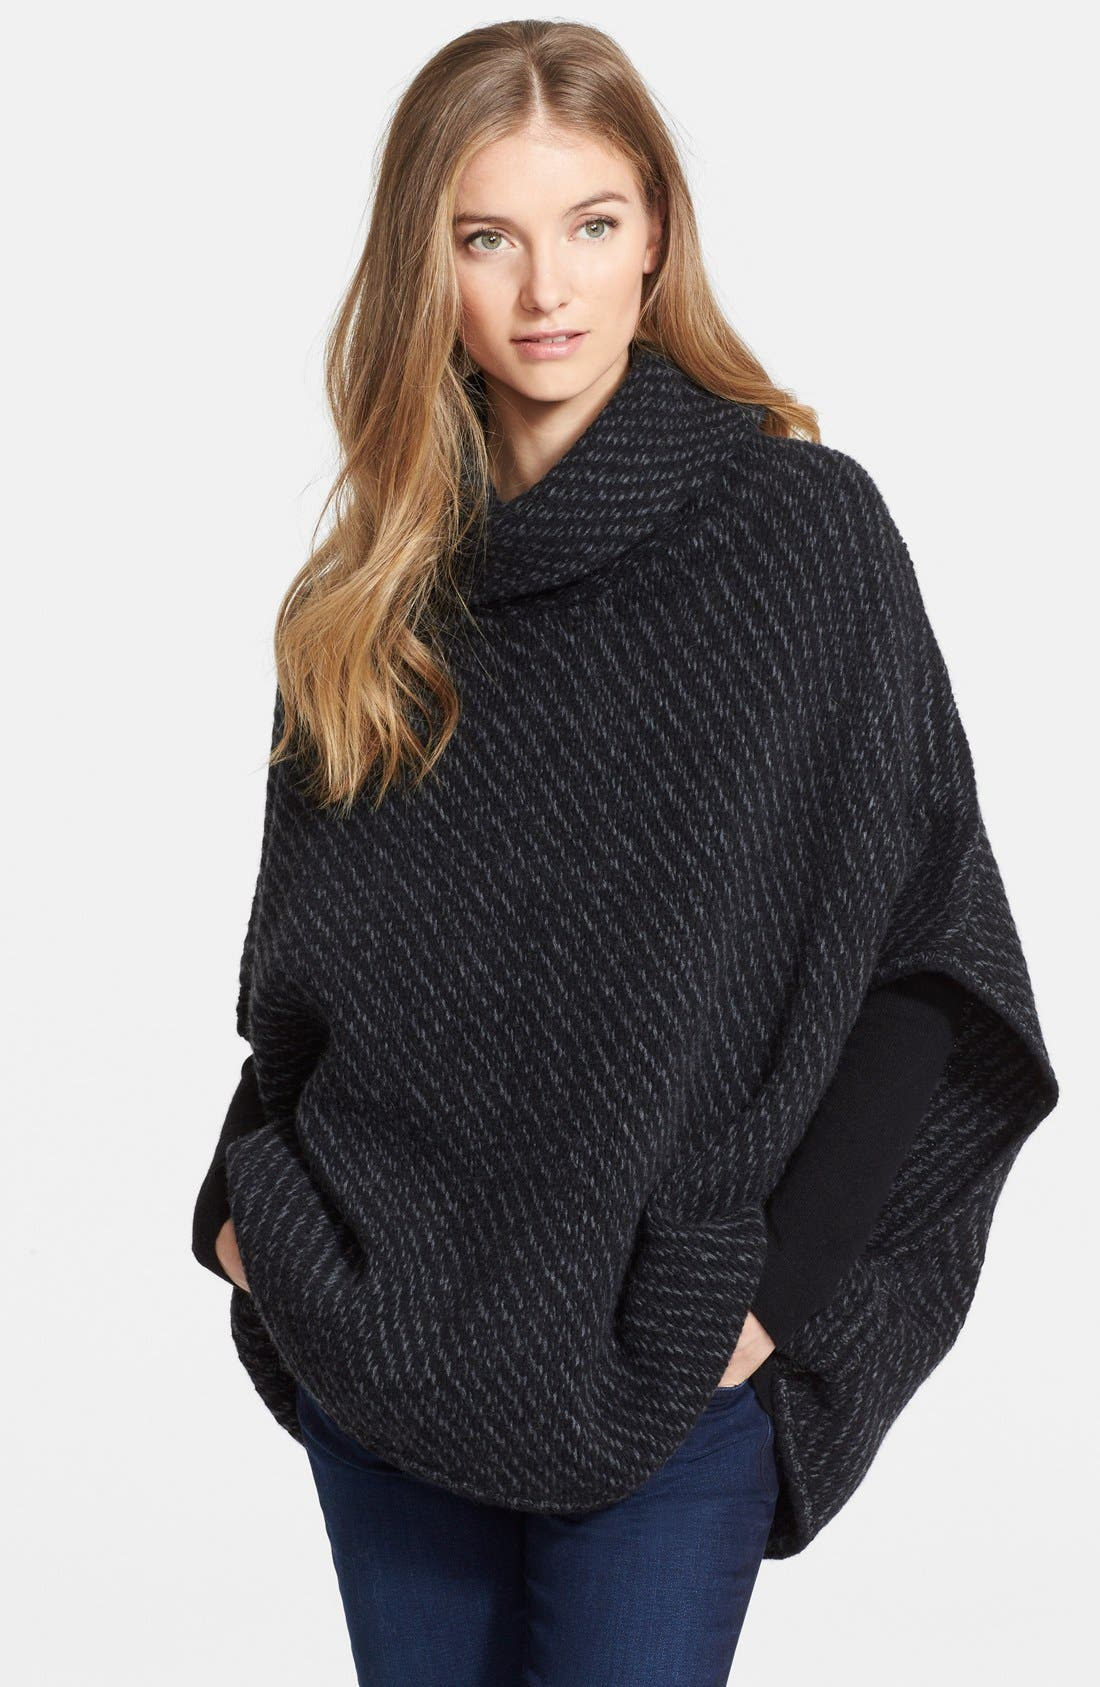 Alternate Image 1 Selected - Joie 'Stellan' Merino Wool & Cashmere Turtleneck Poncho Sweater